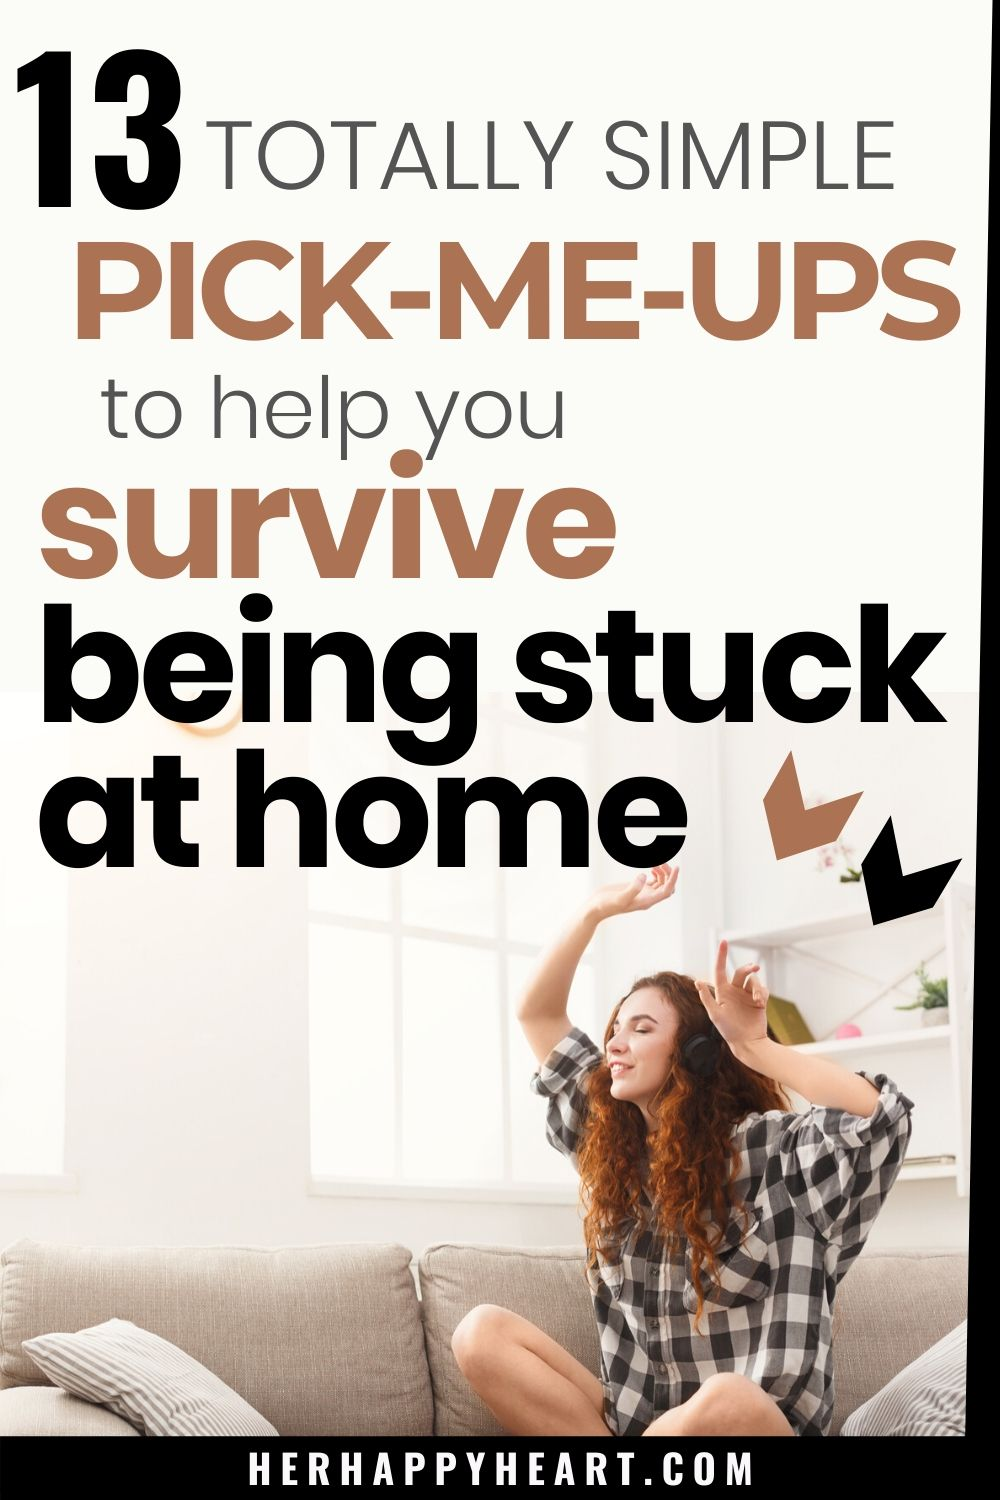 Stuck at home activities and ideas for adults, single people, parents and couples | Things to do during quarantine | Quarantine activities and ideas for adults | Quarantine bucket list | Social distancing and isolation | Things to do while social distancing